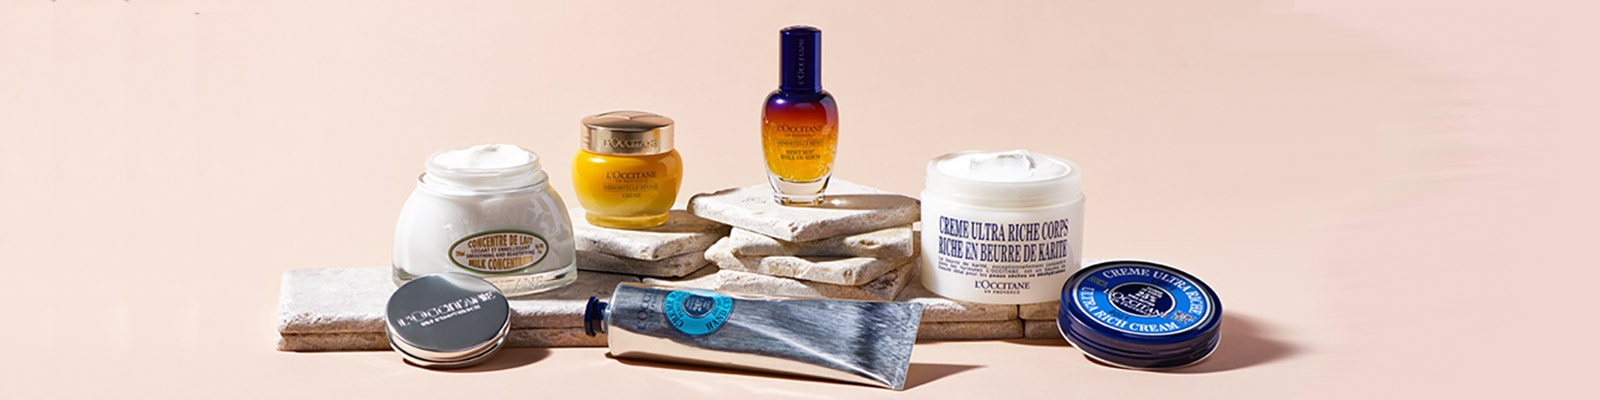 Most loved - Bestsellers - L'Occitane